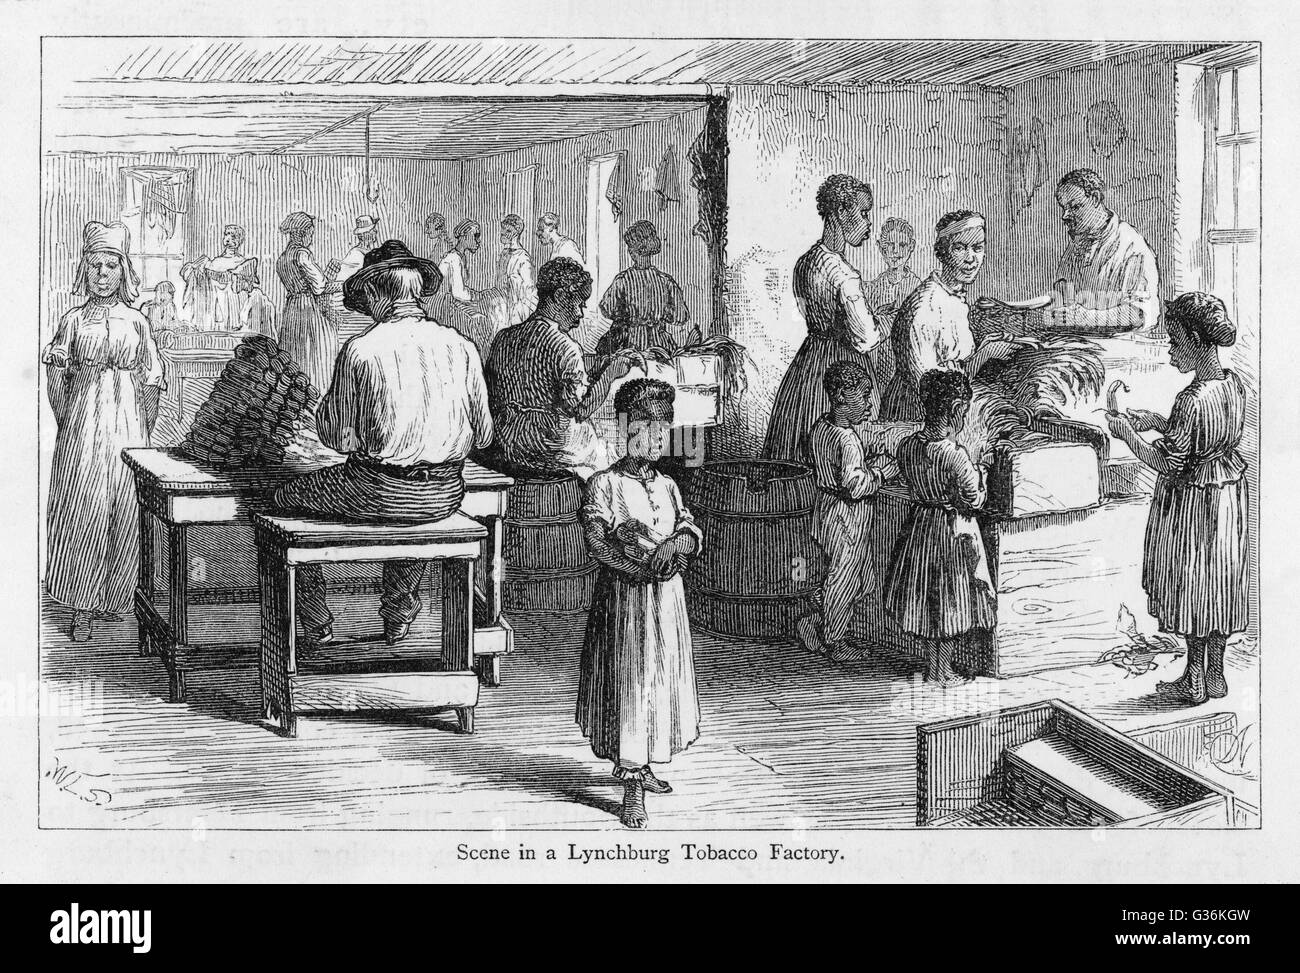 Virginia, USA : tobacco factory at Lynchburg         Date: 1874 - Stock Image